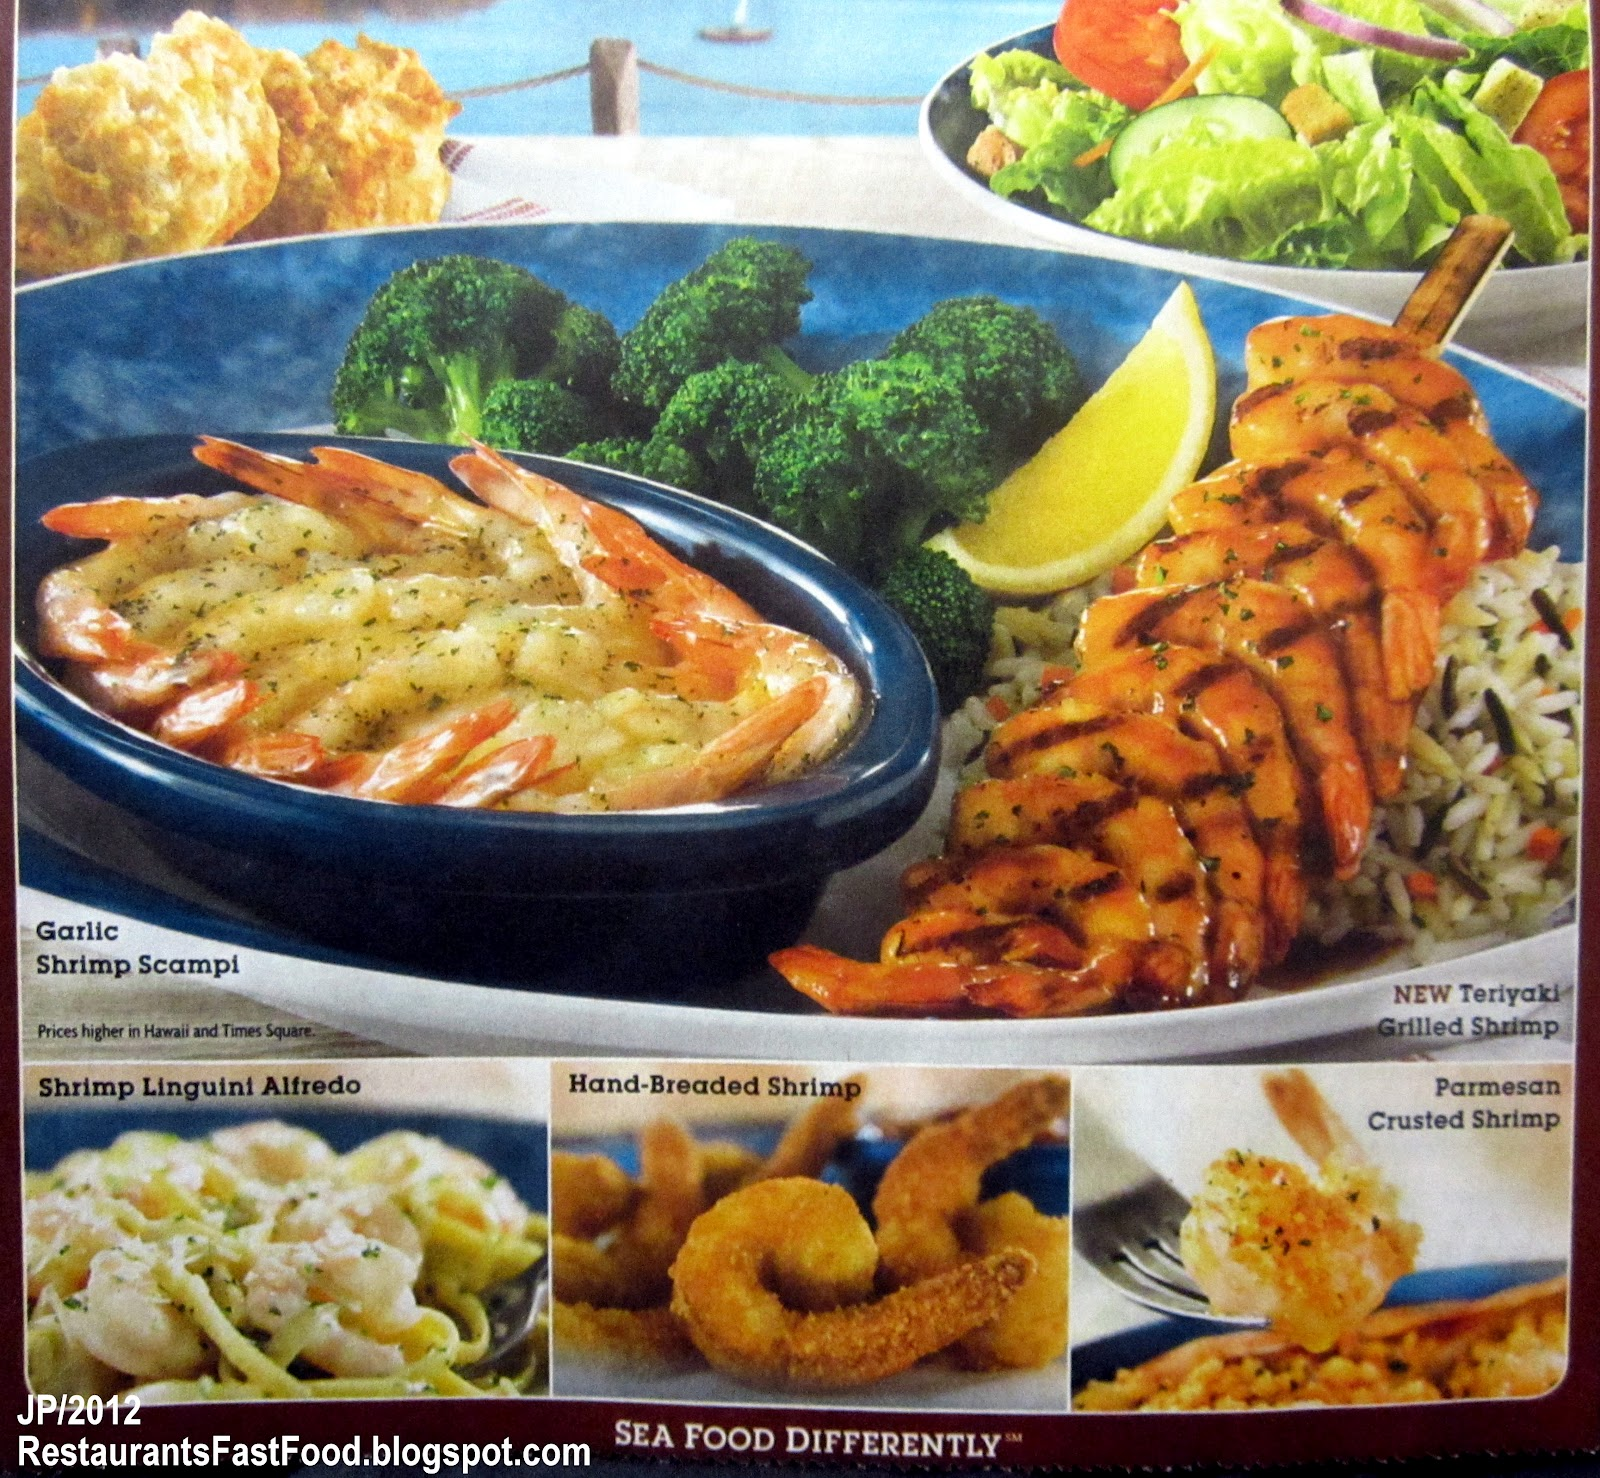 Restaurant fast food menu mcdonald 39 s dq bk hamburger pizza for All you can eat fish and chips near me